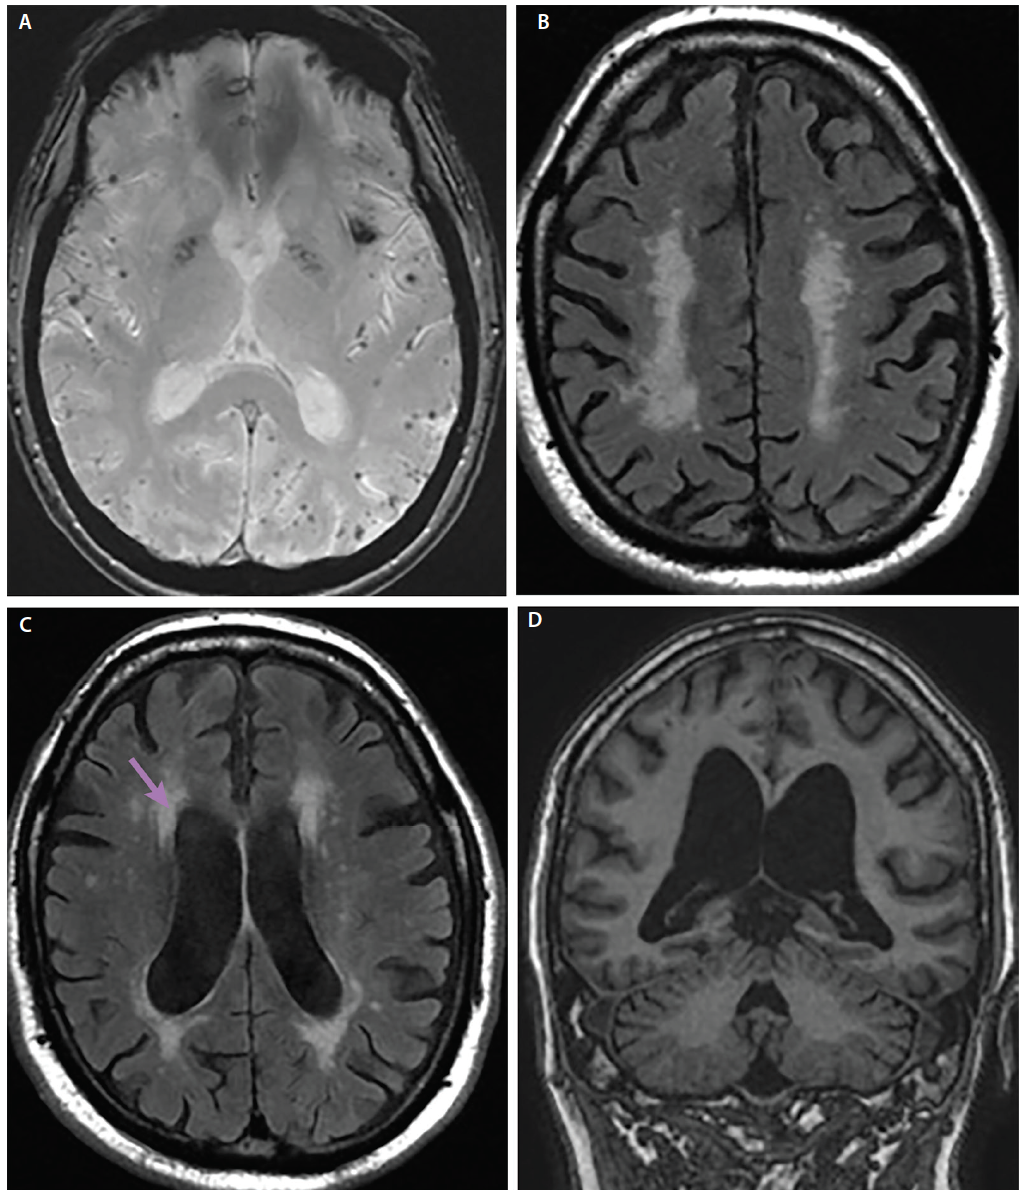 <p>Figure 2. Amyloid angiopathy is seen with gradient echo susceptibility artifact from microhemorrhages, usually at gray-white matter junction (A). In vascular dementia and chronic microangiopathic disease is seen as confluent periventricular white matter disease (B, C). Crowding at the vertex and ventricles that are enlarged out of proportion to volume loss (D) may reflect normal-pressure hydrocephalus (NPH), although NPH is still a clinical diagnosis.</p>